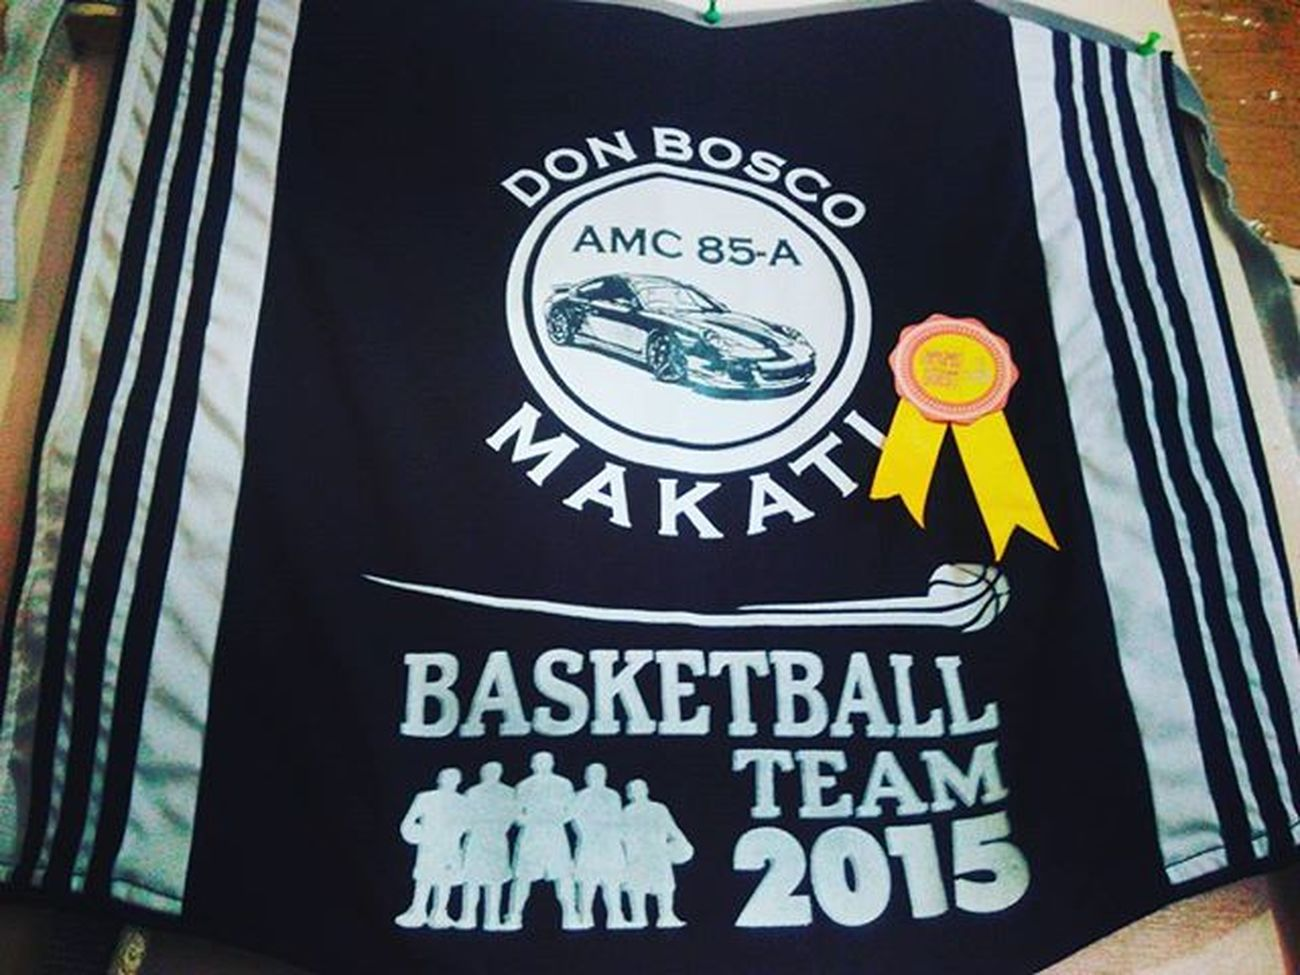 Proud Donbosco Bosconians Makaticity